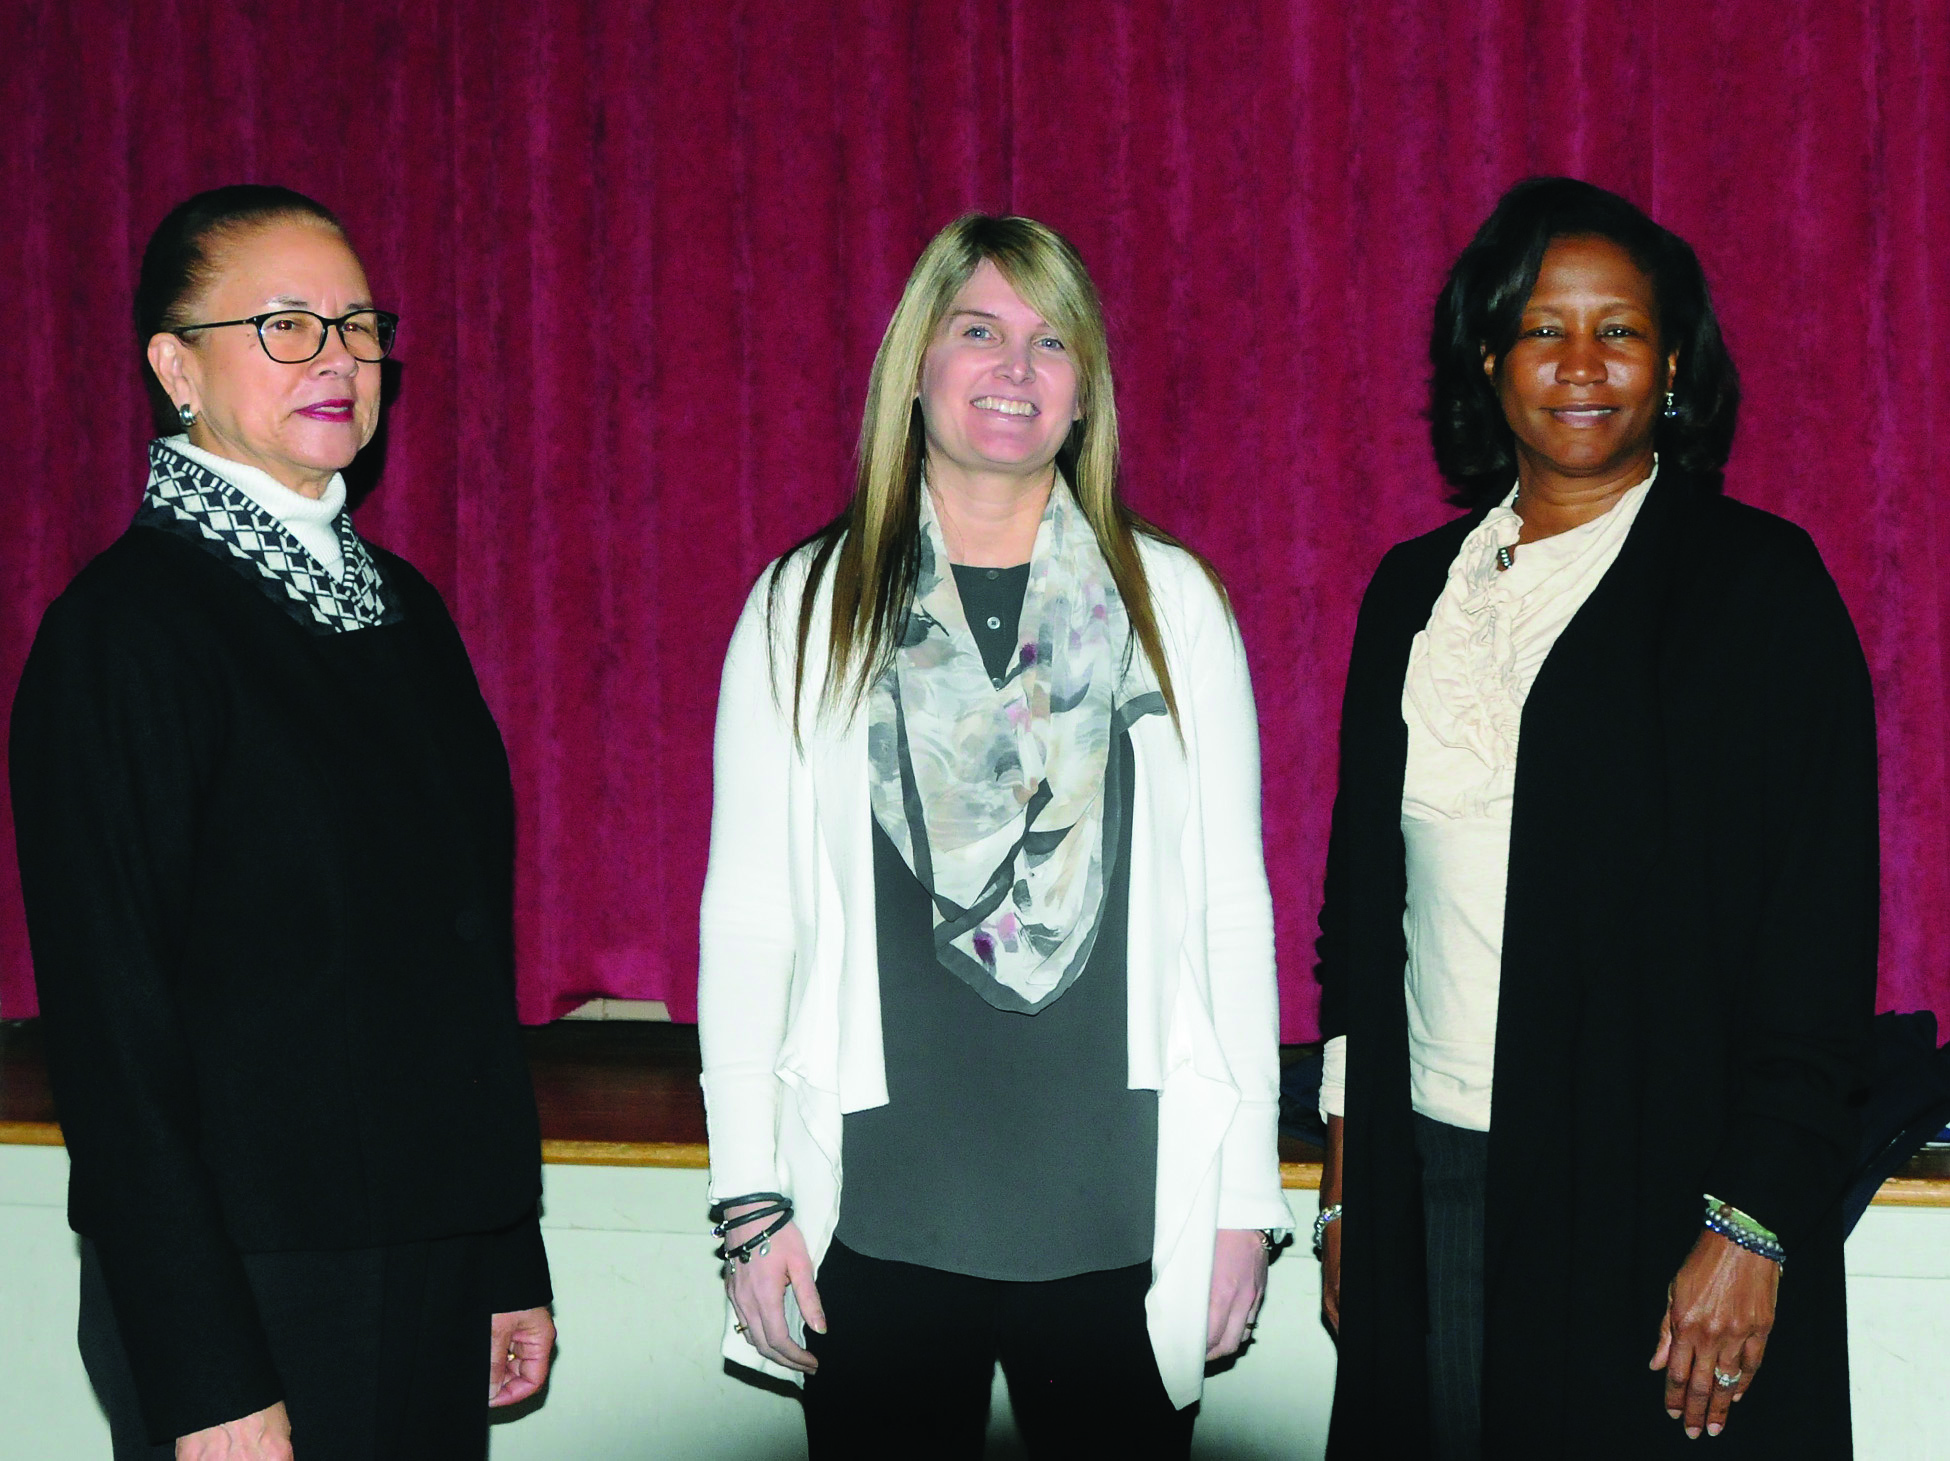 Jolinda Wilson (center), the first doctoral student to defend her dissertation at Shippensburg University, with Barbara Lyman (left), provost and executive vice president, and President Laurie Carter in February.